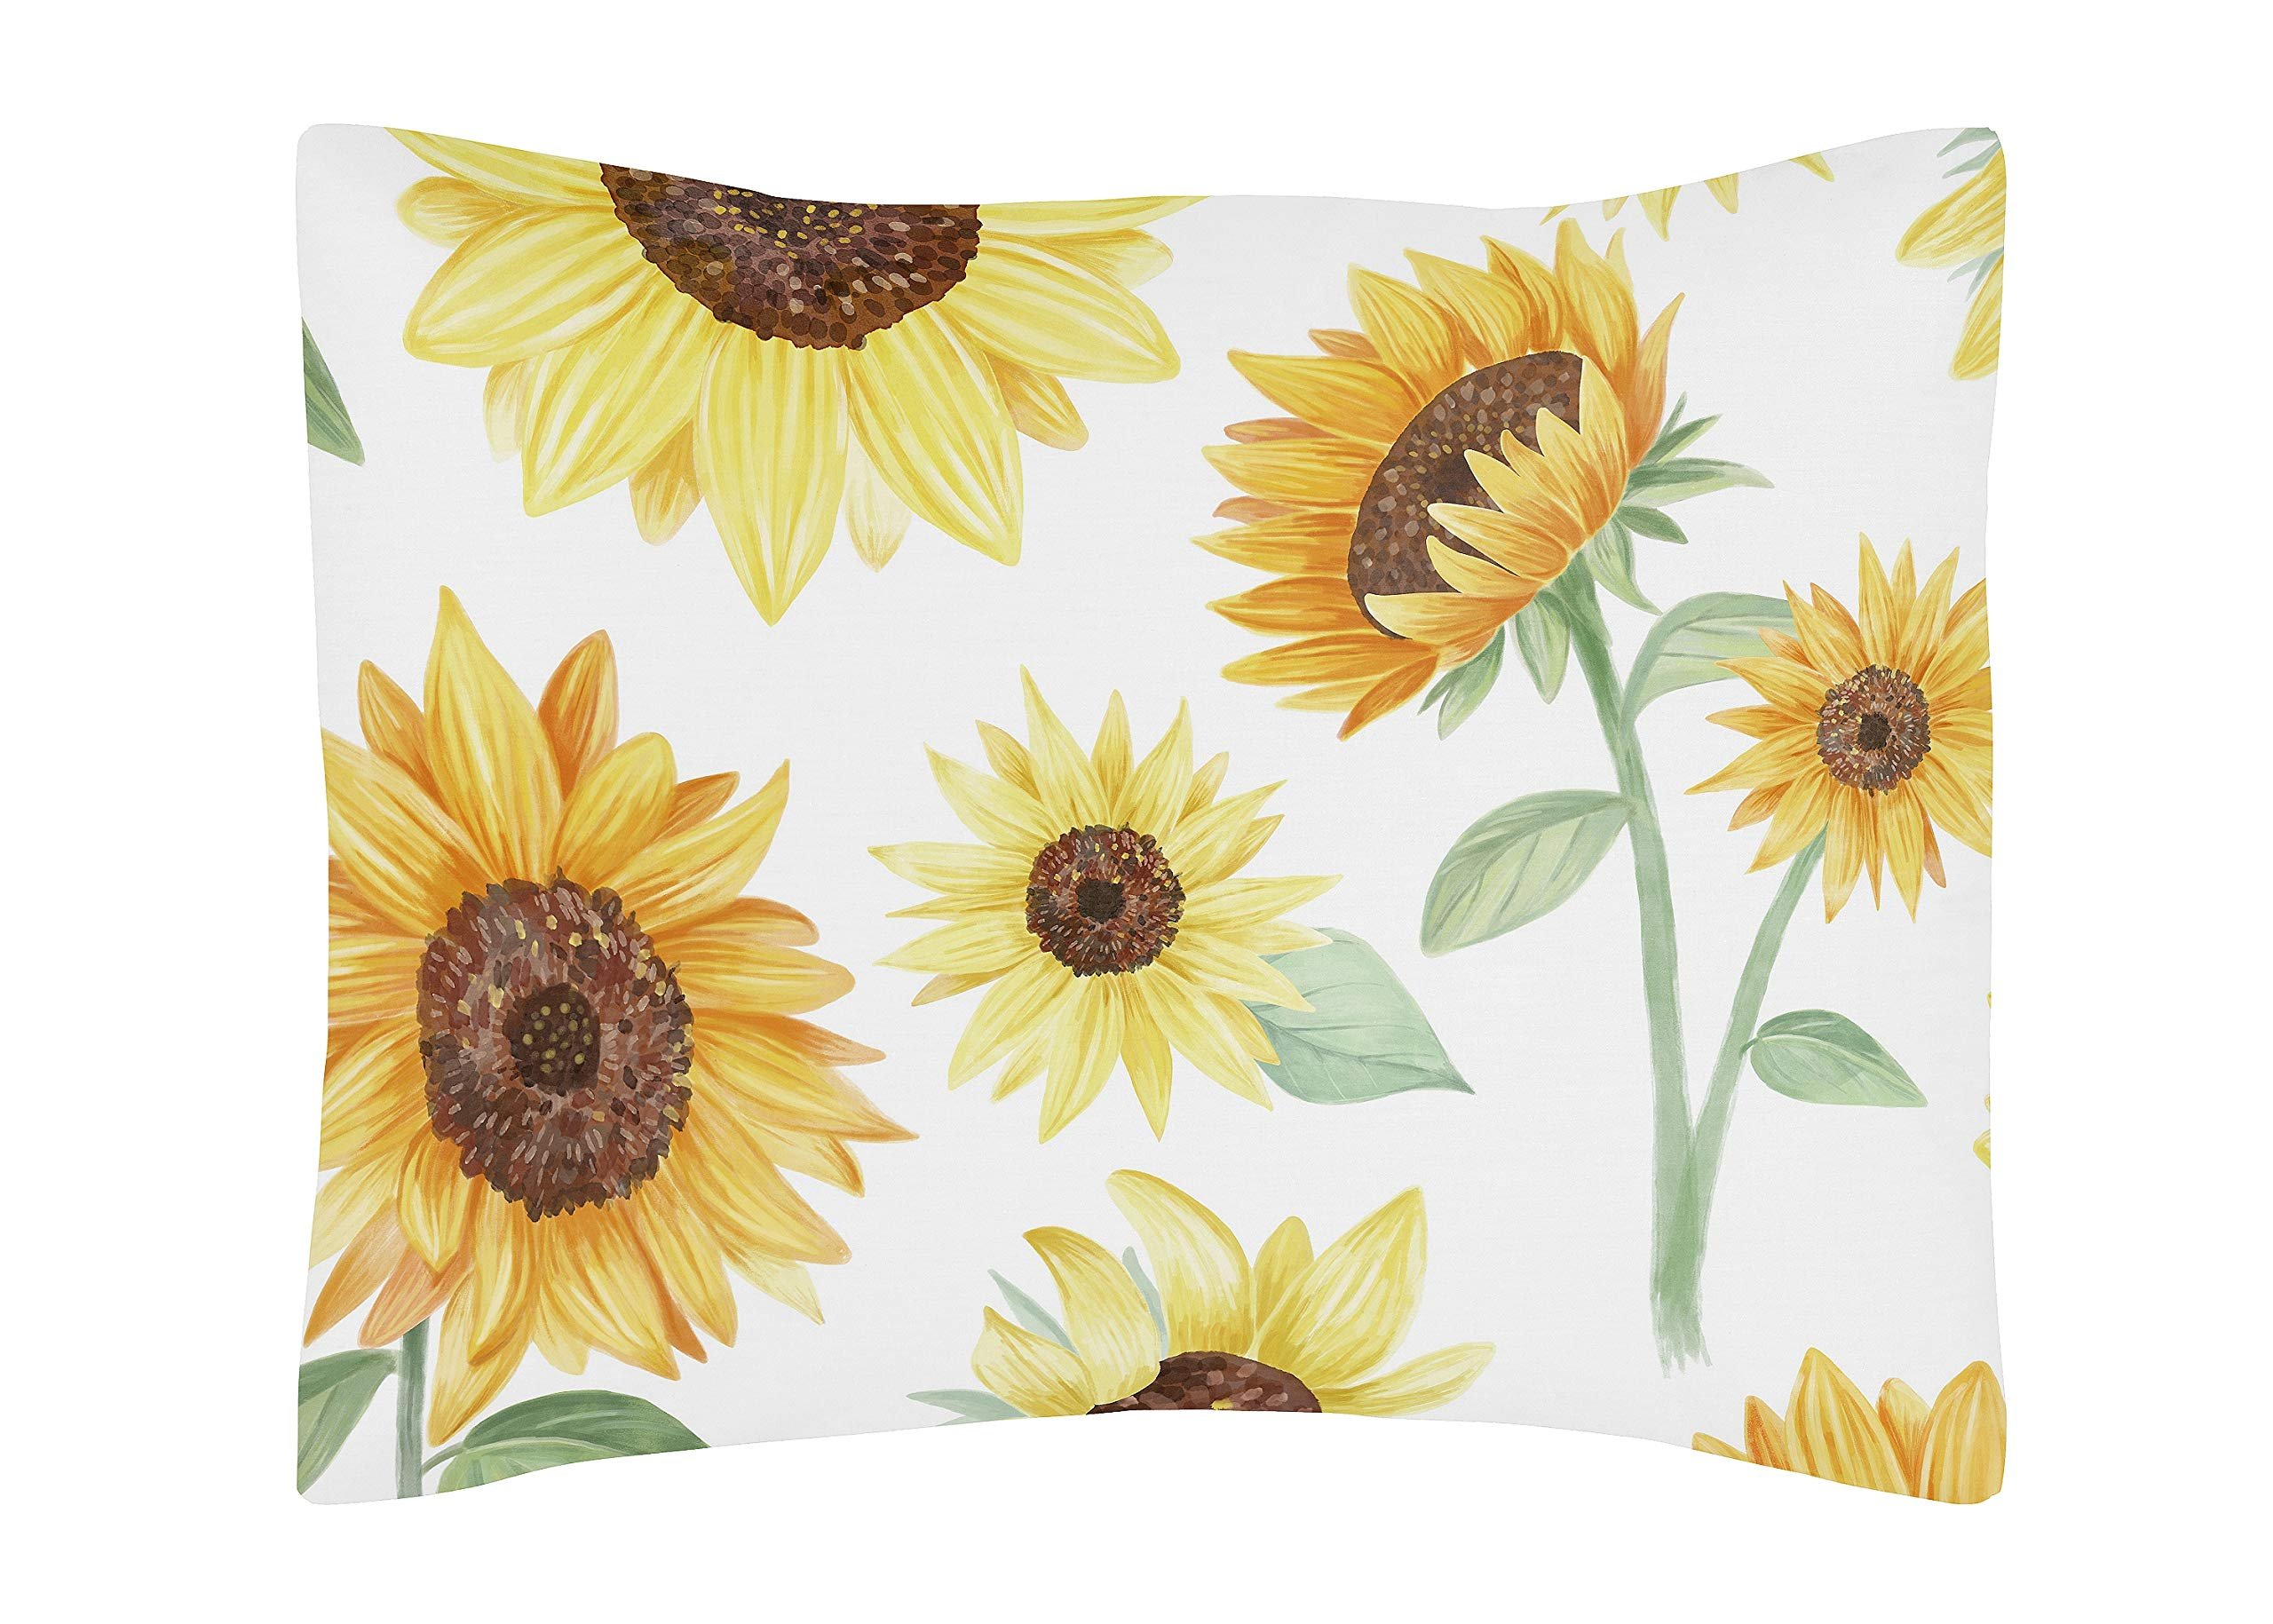 Sweet Jojo Designs Yellow, Green and White Sunflower Boho Floral Standard Pillow Sham - Farmhouse Watercolor Flower by Sweet Jojo Designs